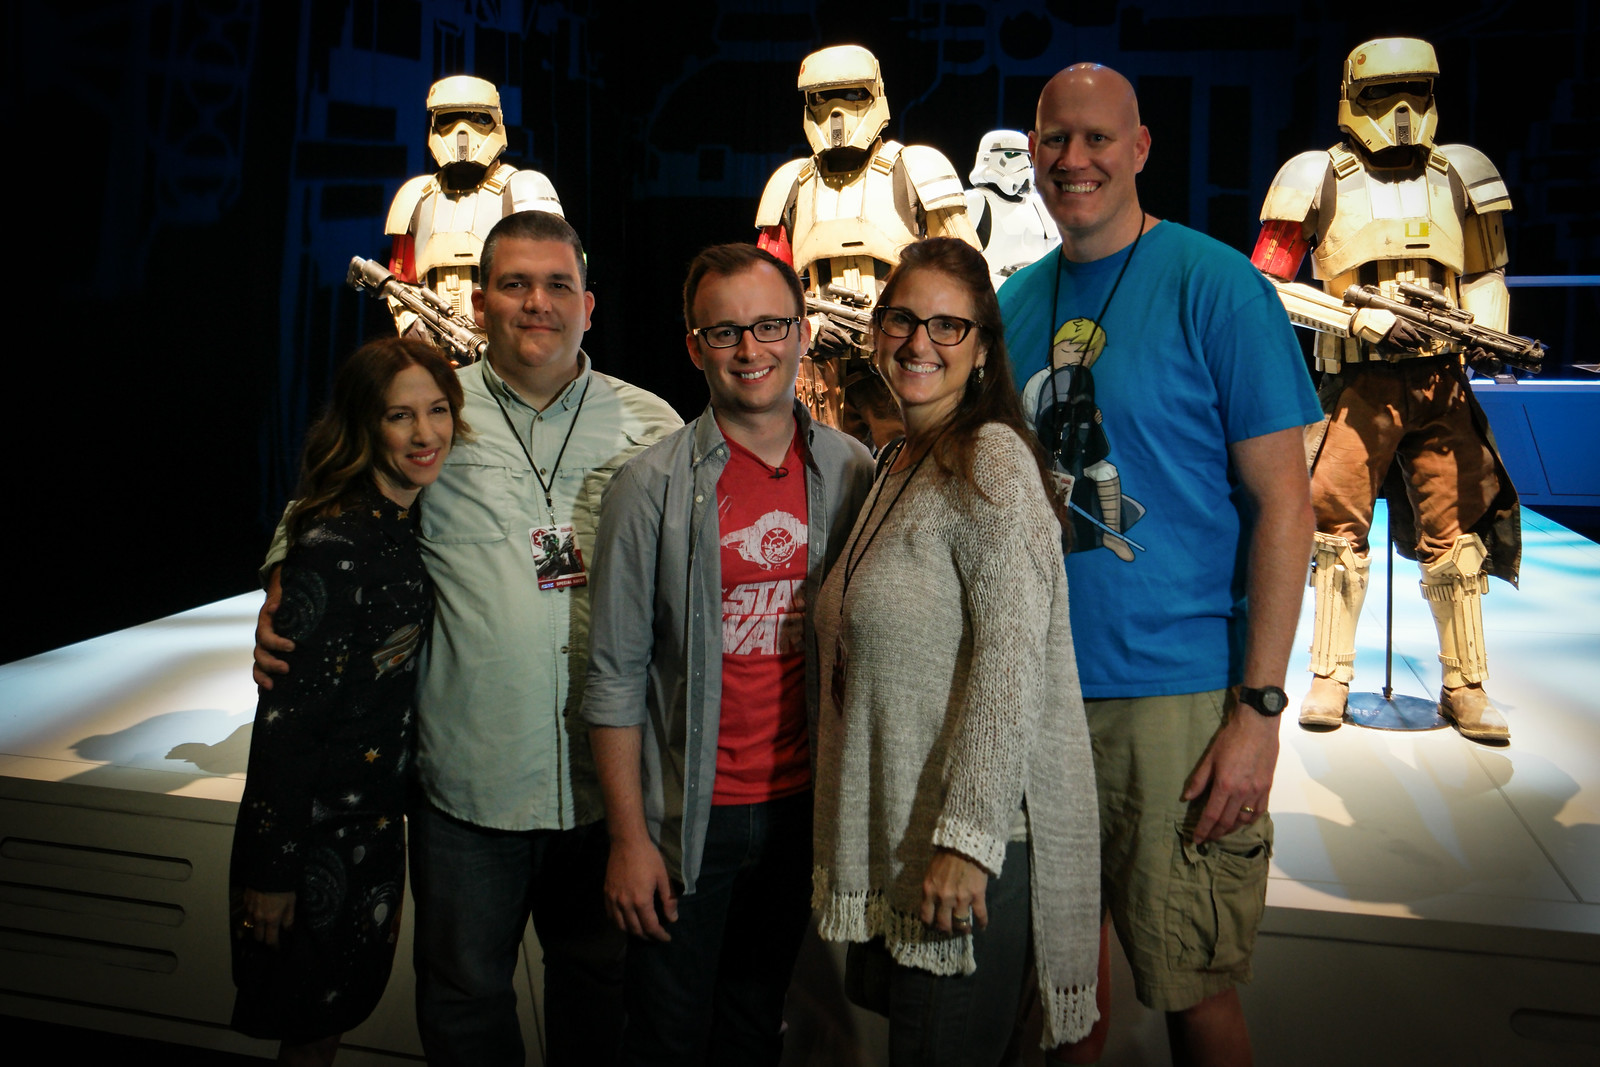 Guided tour of the Rogue One costume exhibit from two of the movie's producers